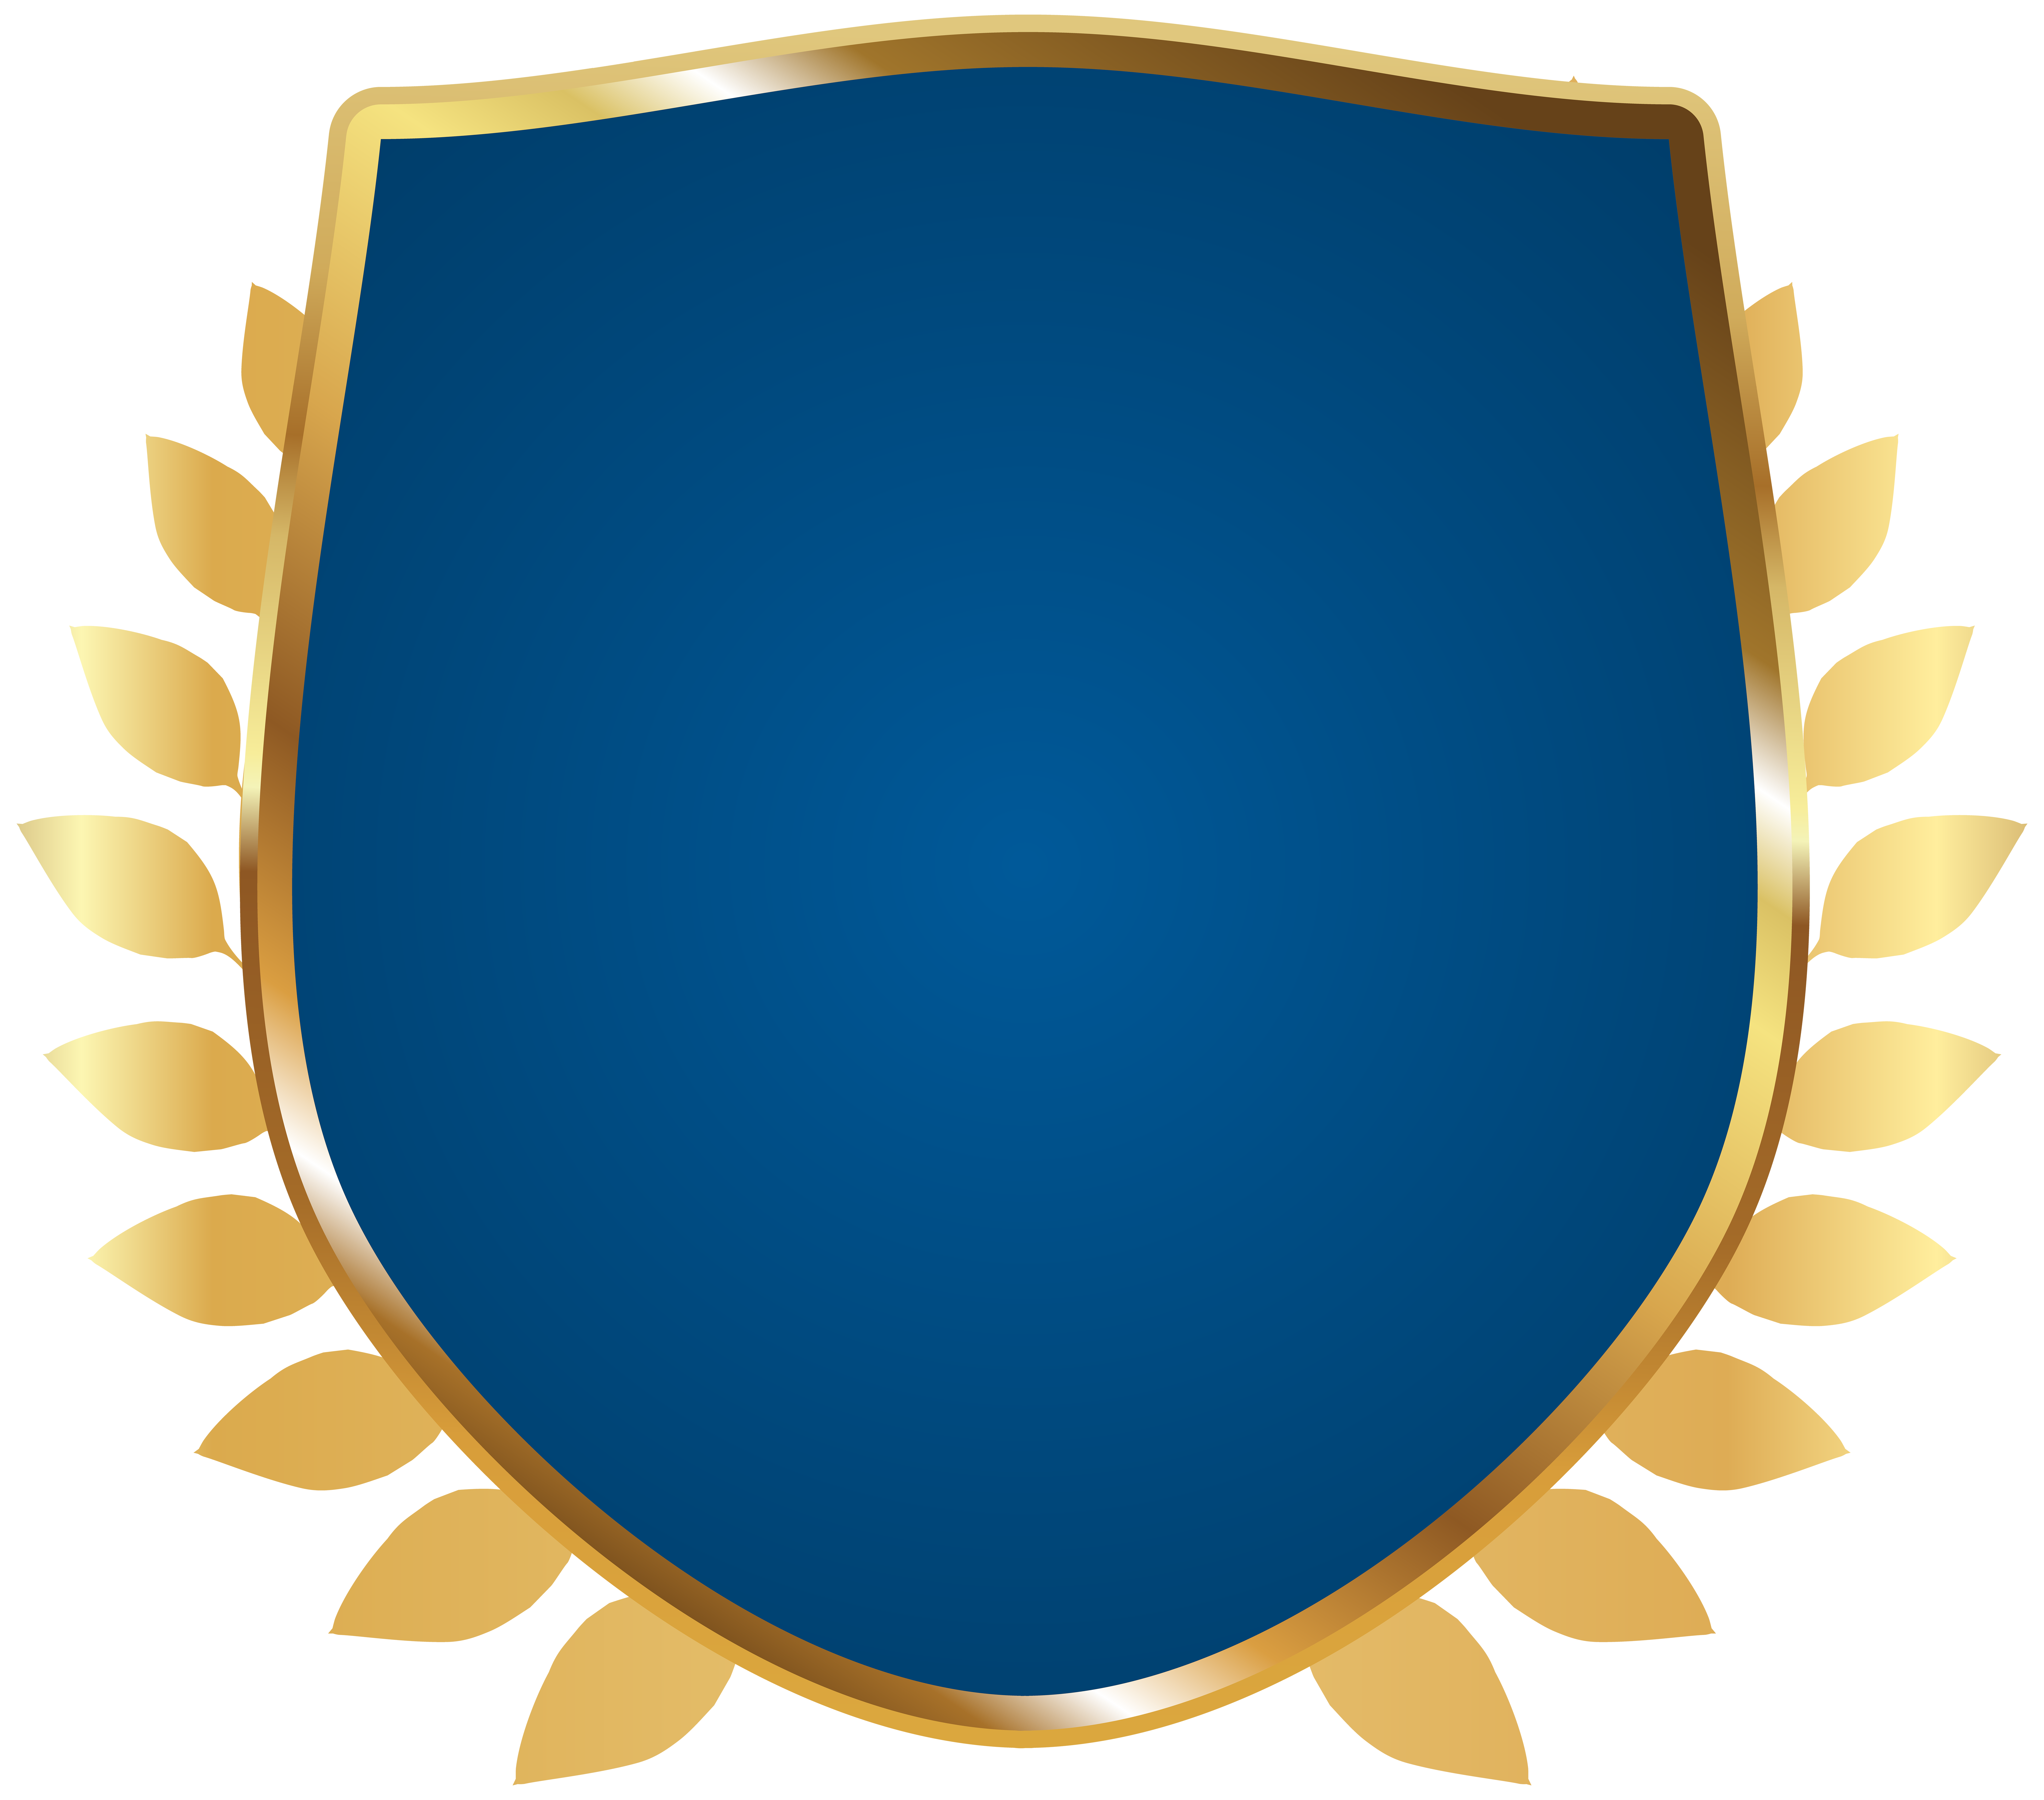 Badge clipart transparent background. Blue png image gallery